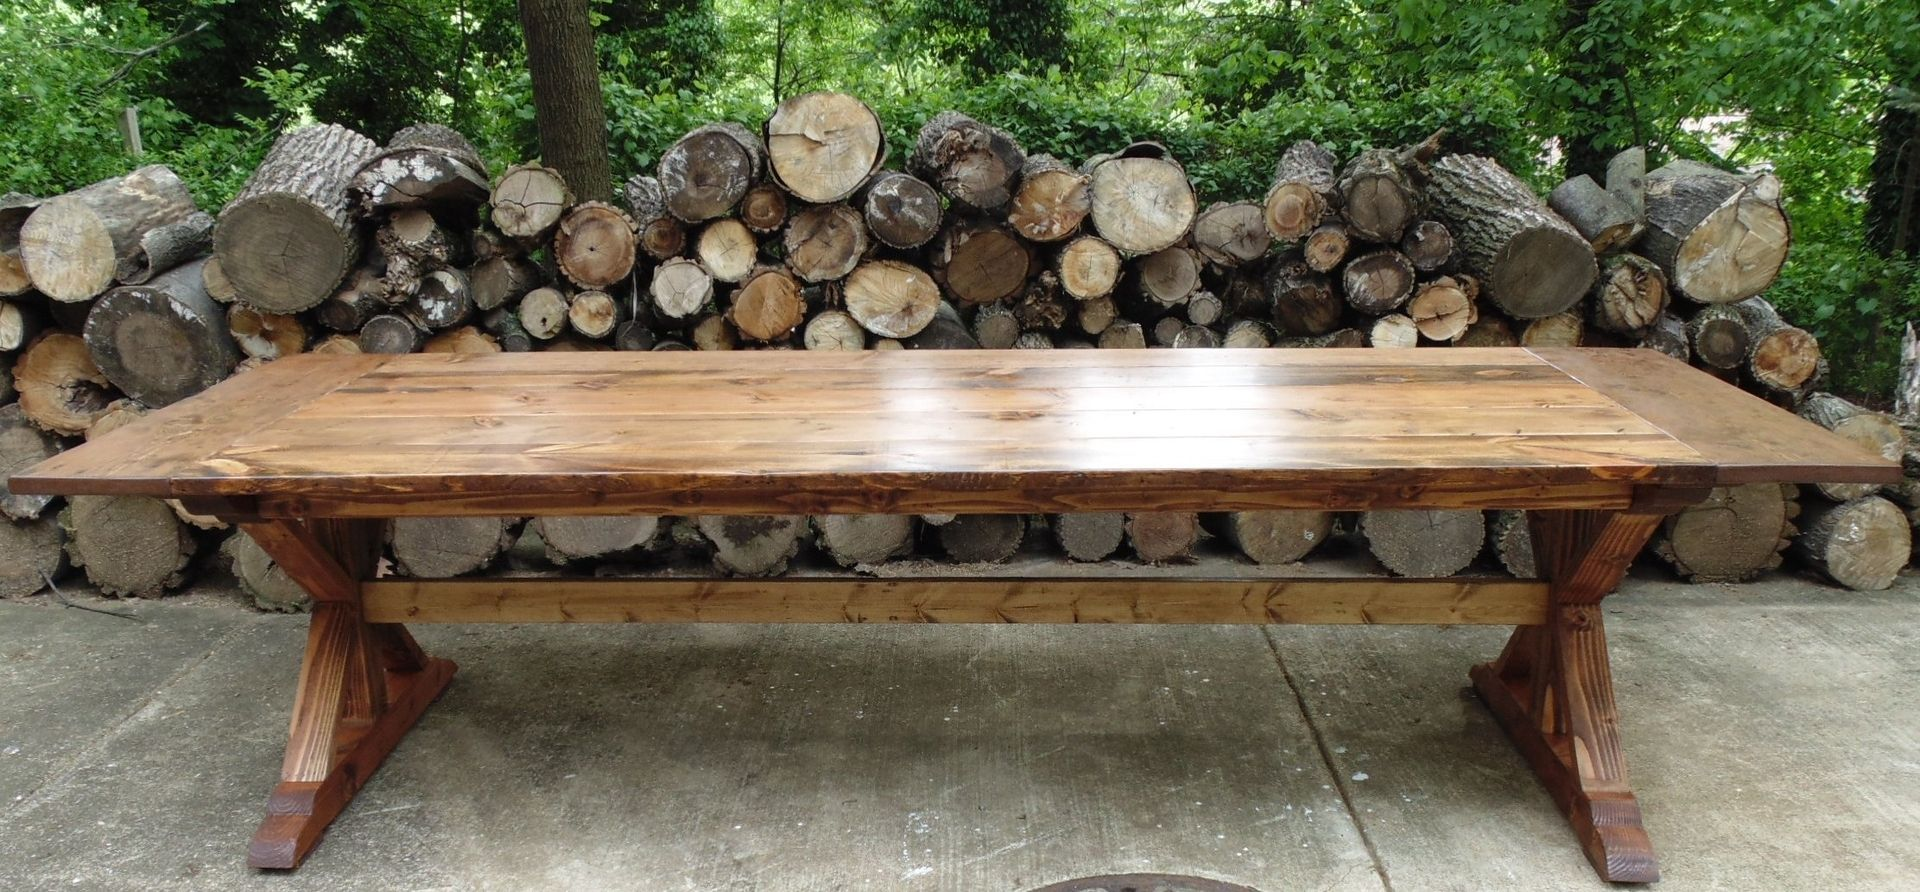 Handmade Reclaimed Wood Trestle X Style Farmhouse Table by  : 87970479441 from www.custommade.com size 1920 x 892 jpeg 341kB